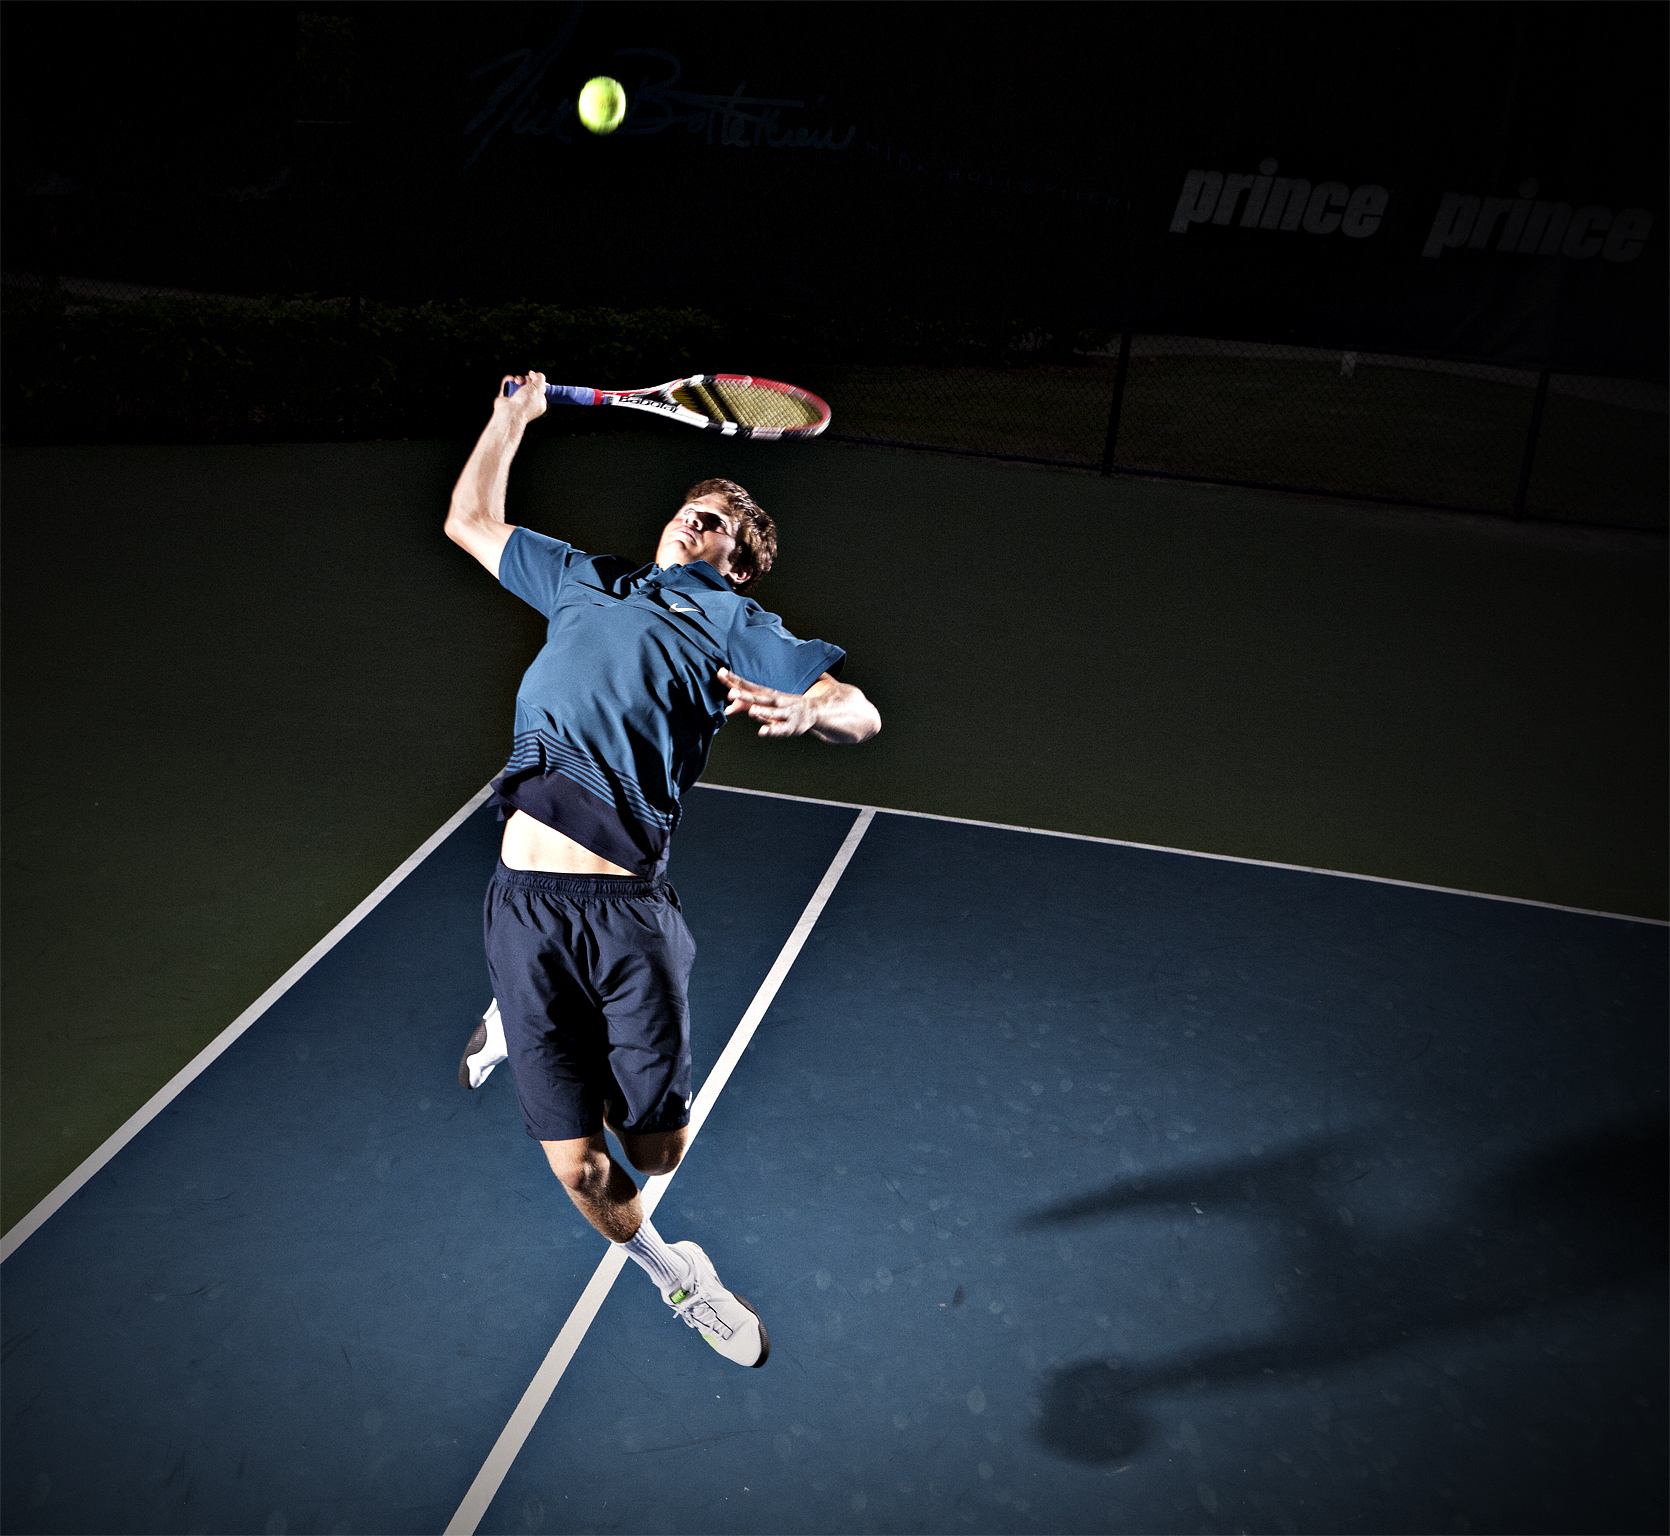 tampa-editorial-photographer-bob-croslin-tennis.JPG